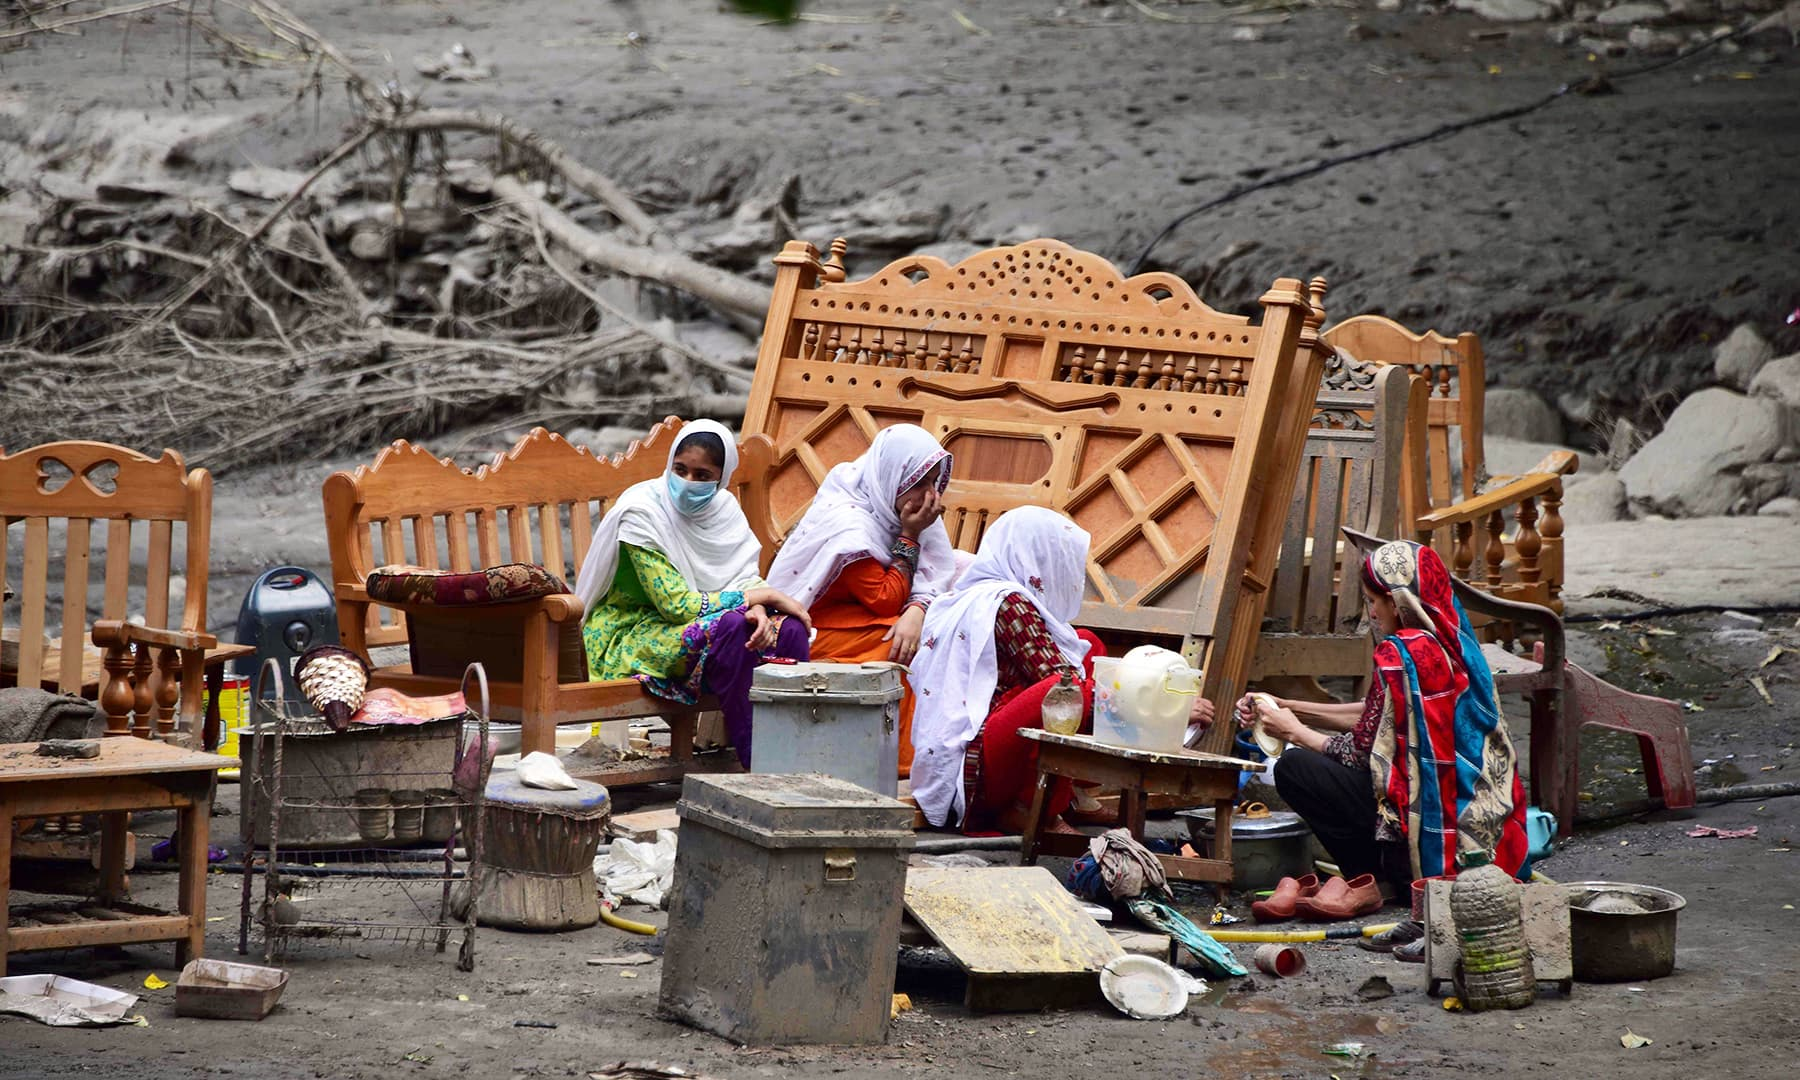 A Kashmiri family gather around their belongings outside their damaged house following heavy monsoon rains in Neelum valley. — AFP